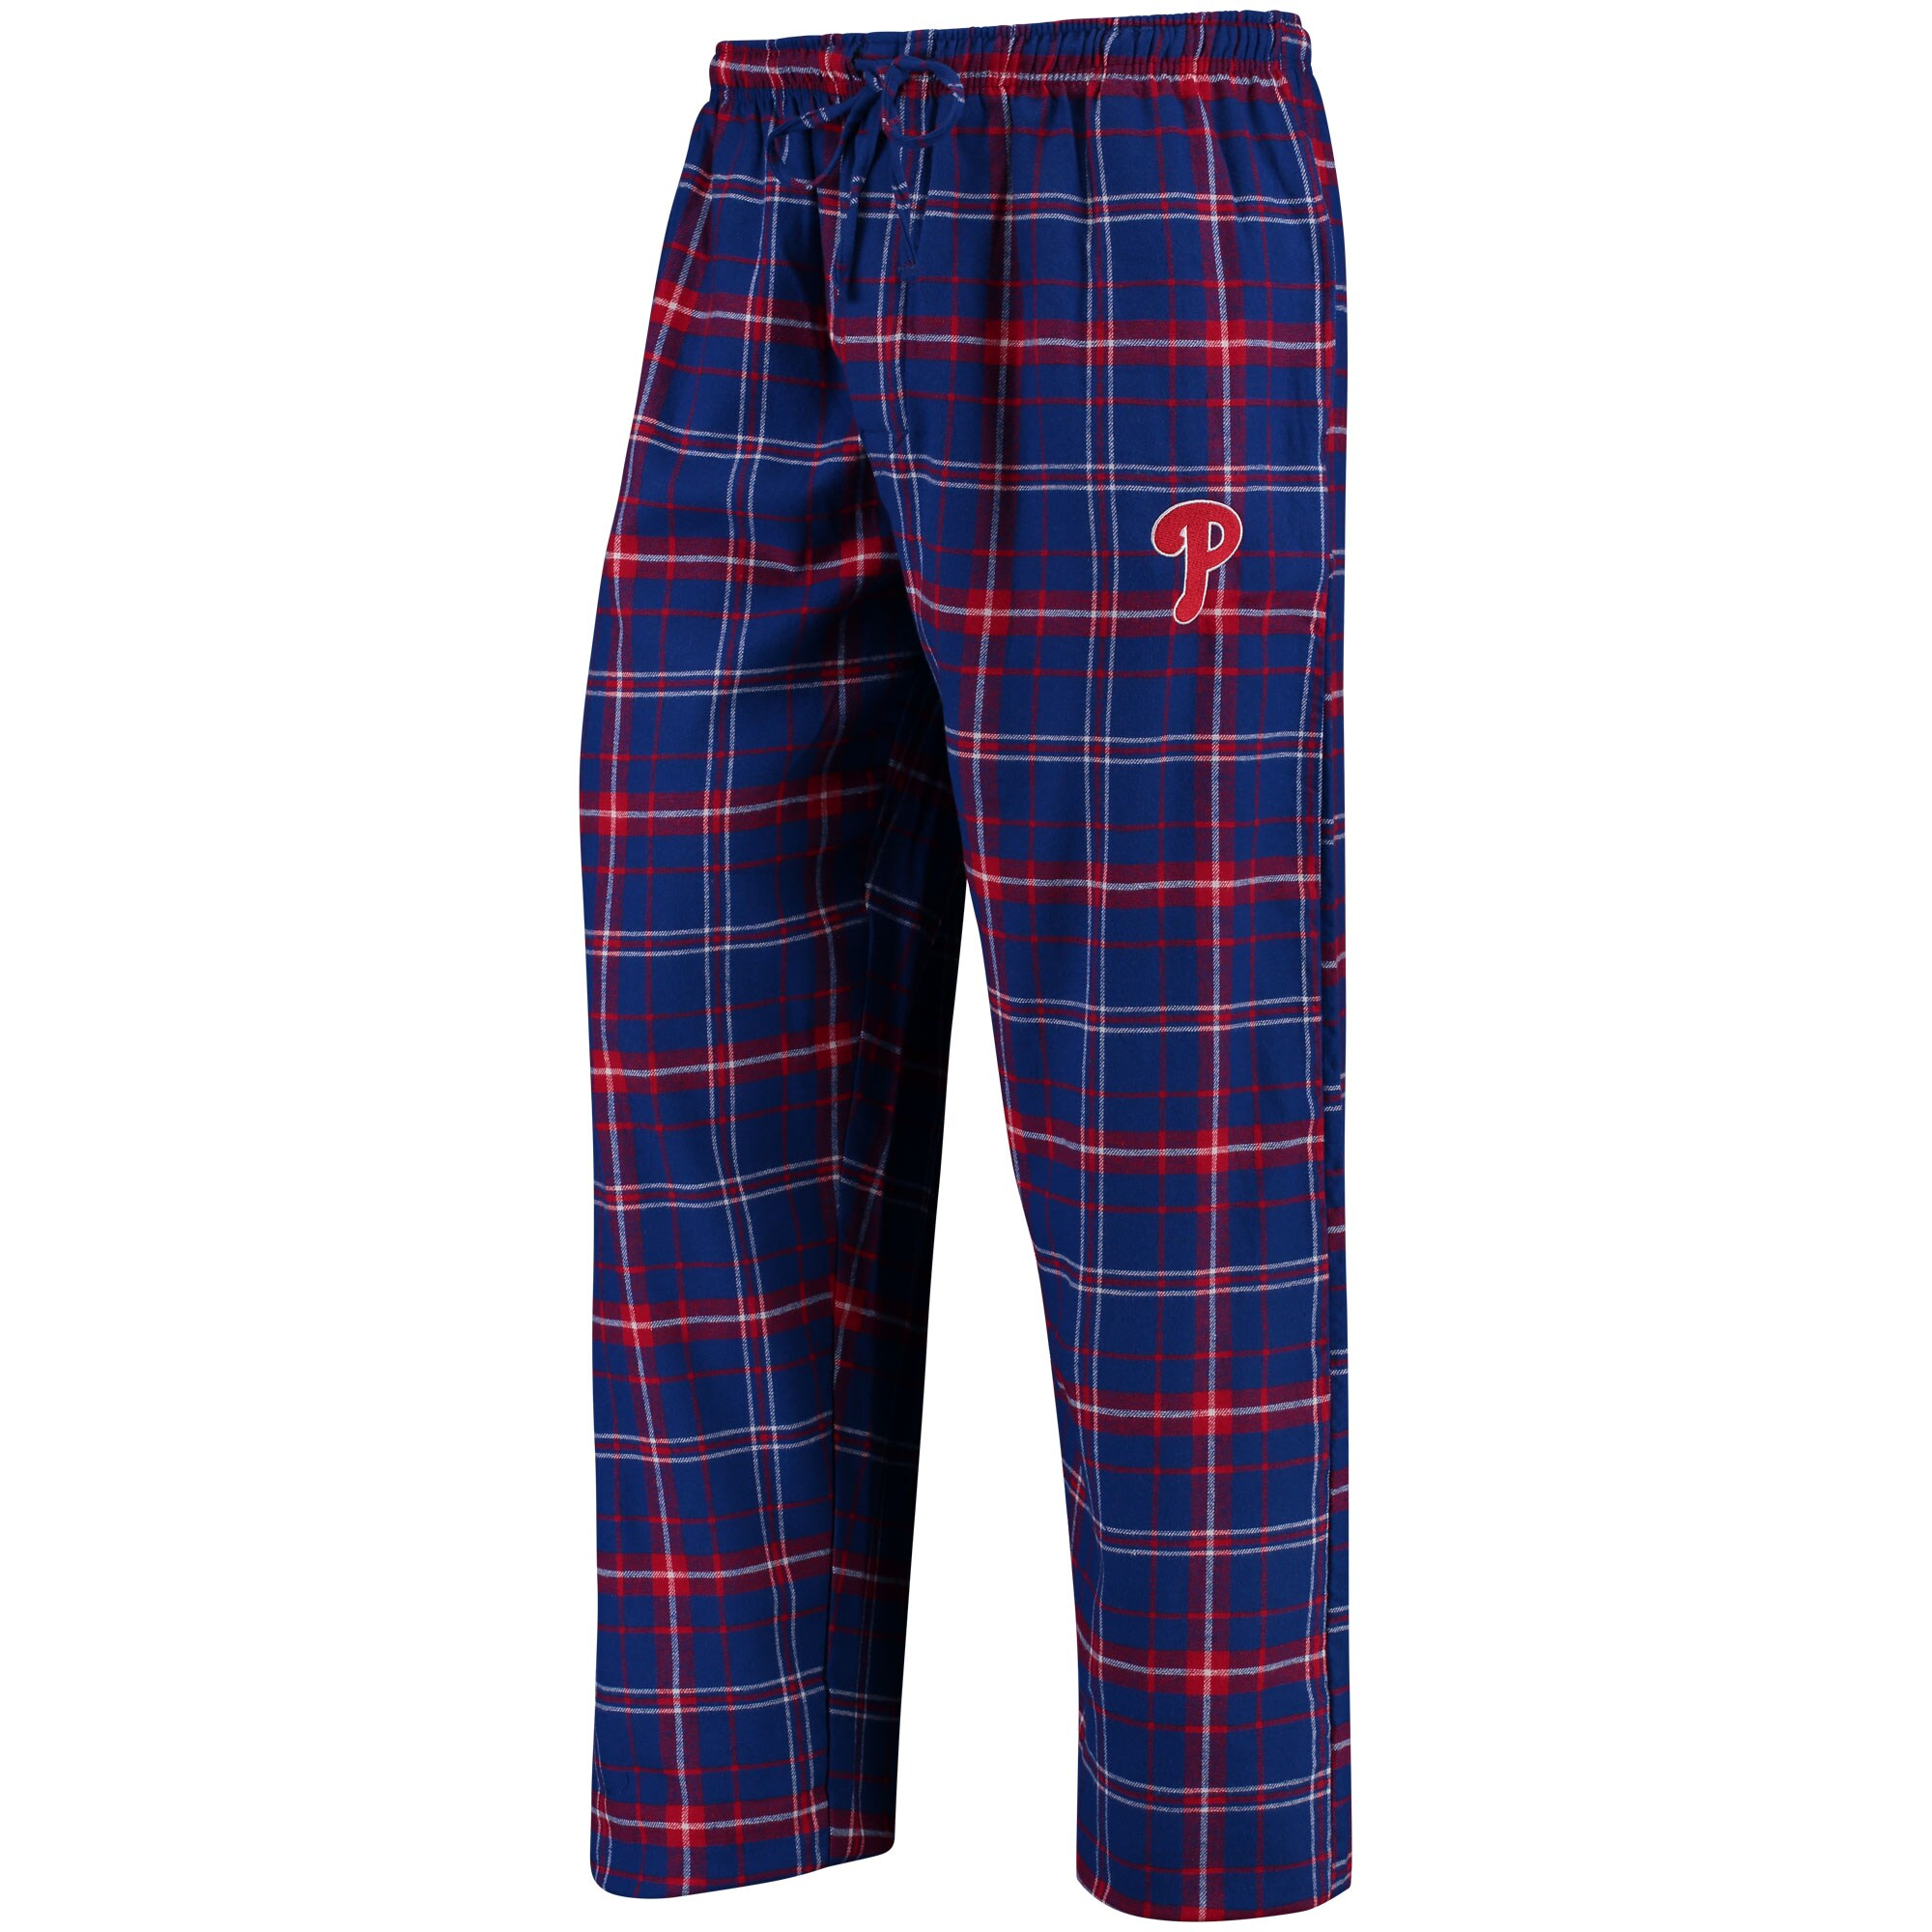 Philadelphia Phillies Concepts Sport Ultimate Plaid Flannel Pants - Royal/Red